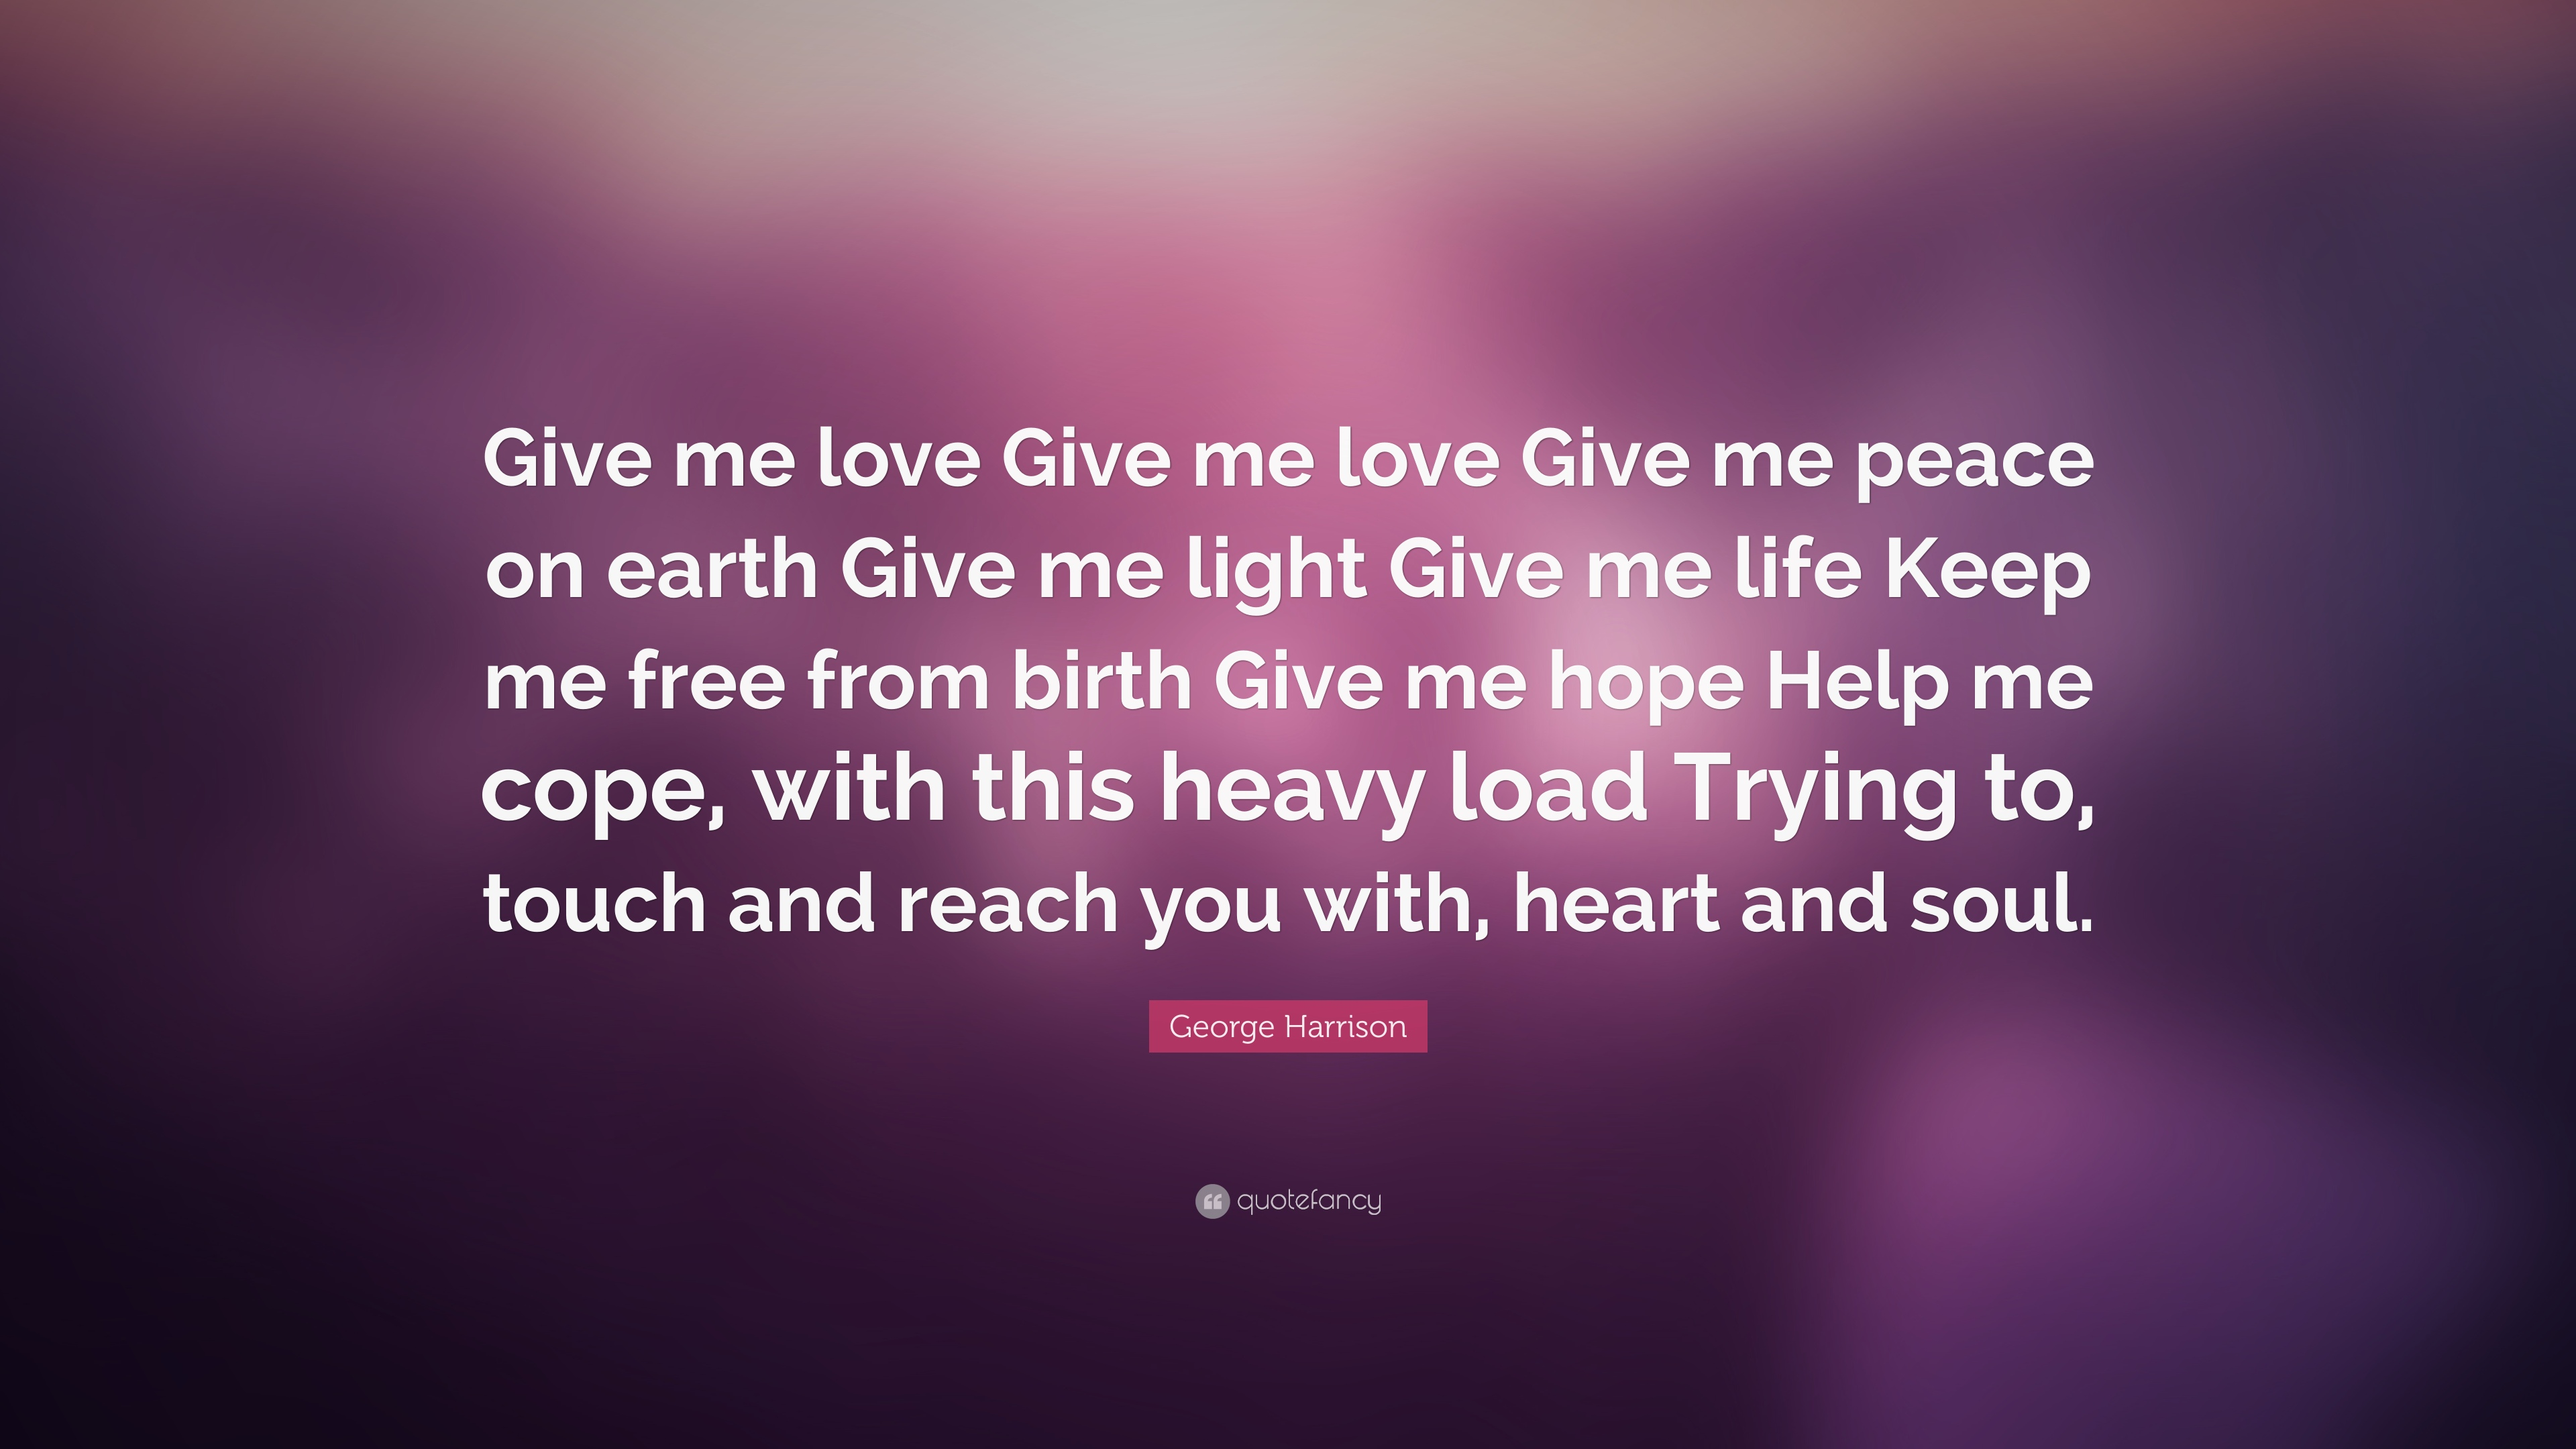 Wonderful George Harrison Quote: U201cGive Me Love Give Me Love Give Me Peace On Earth